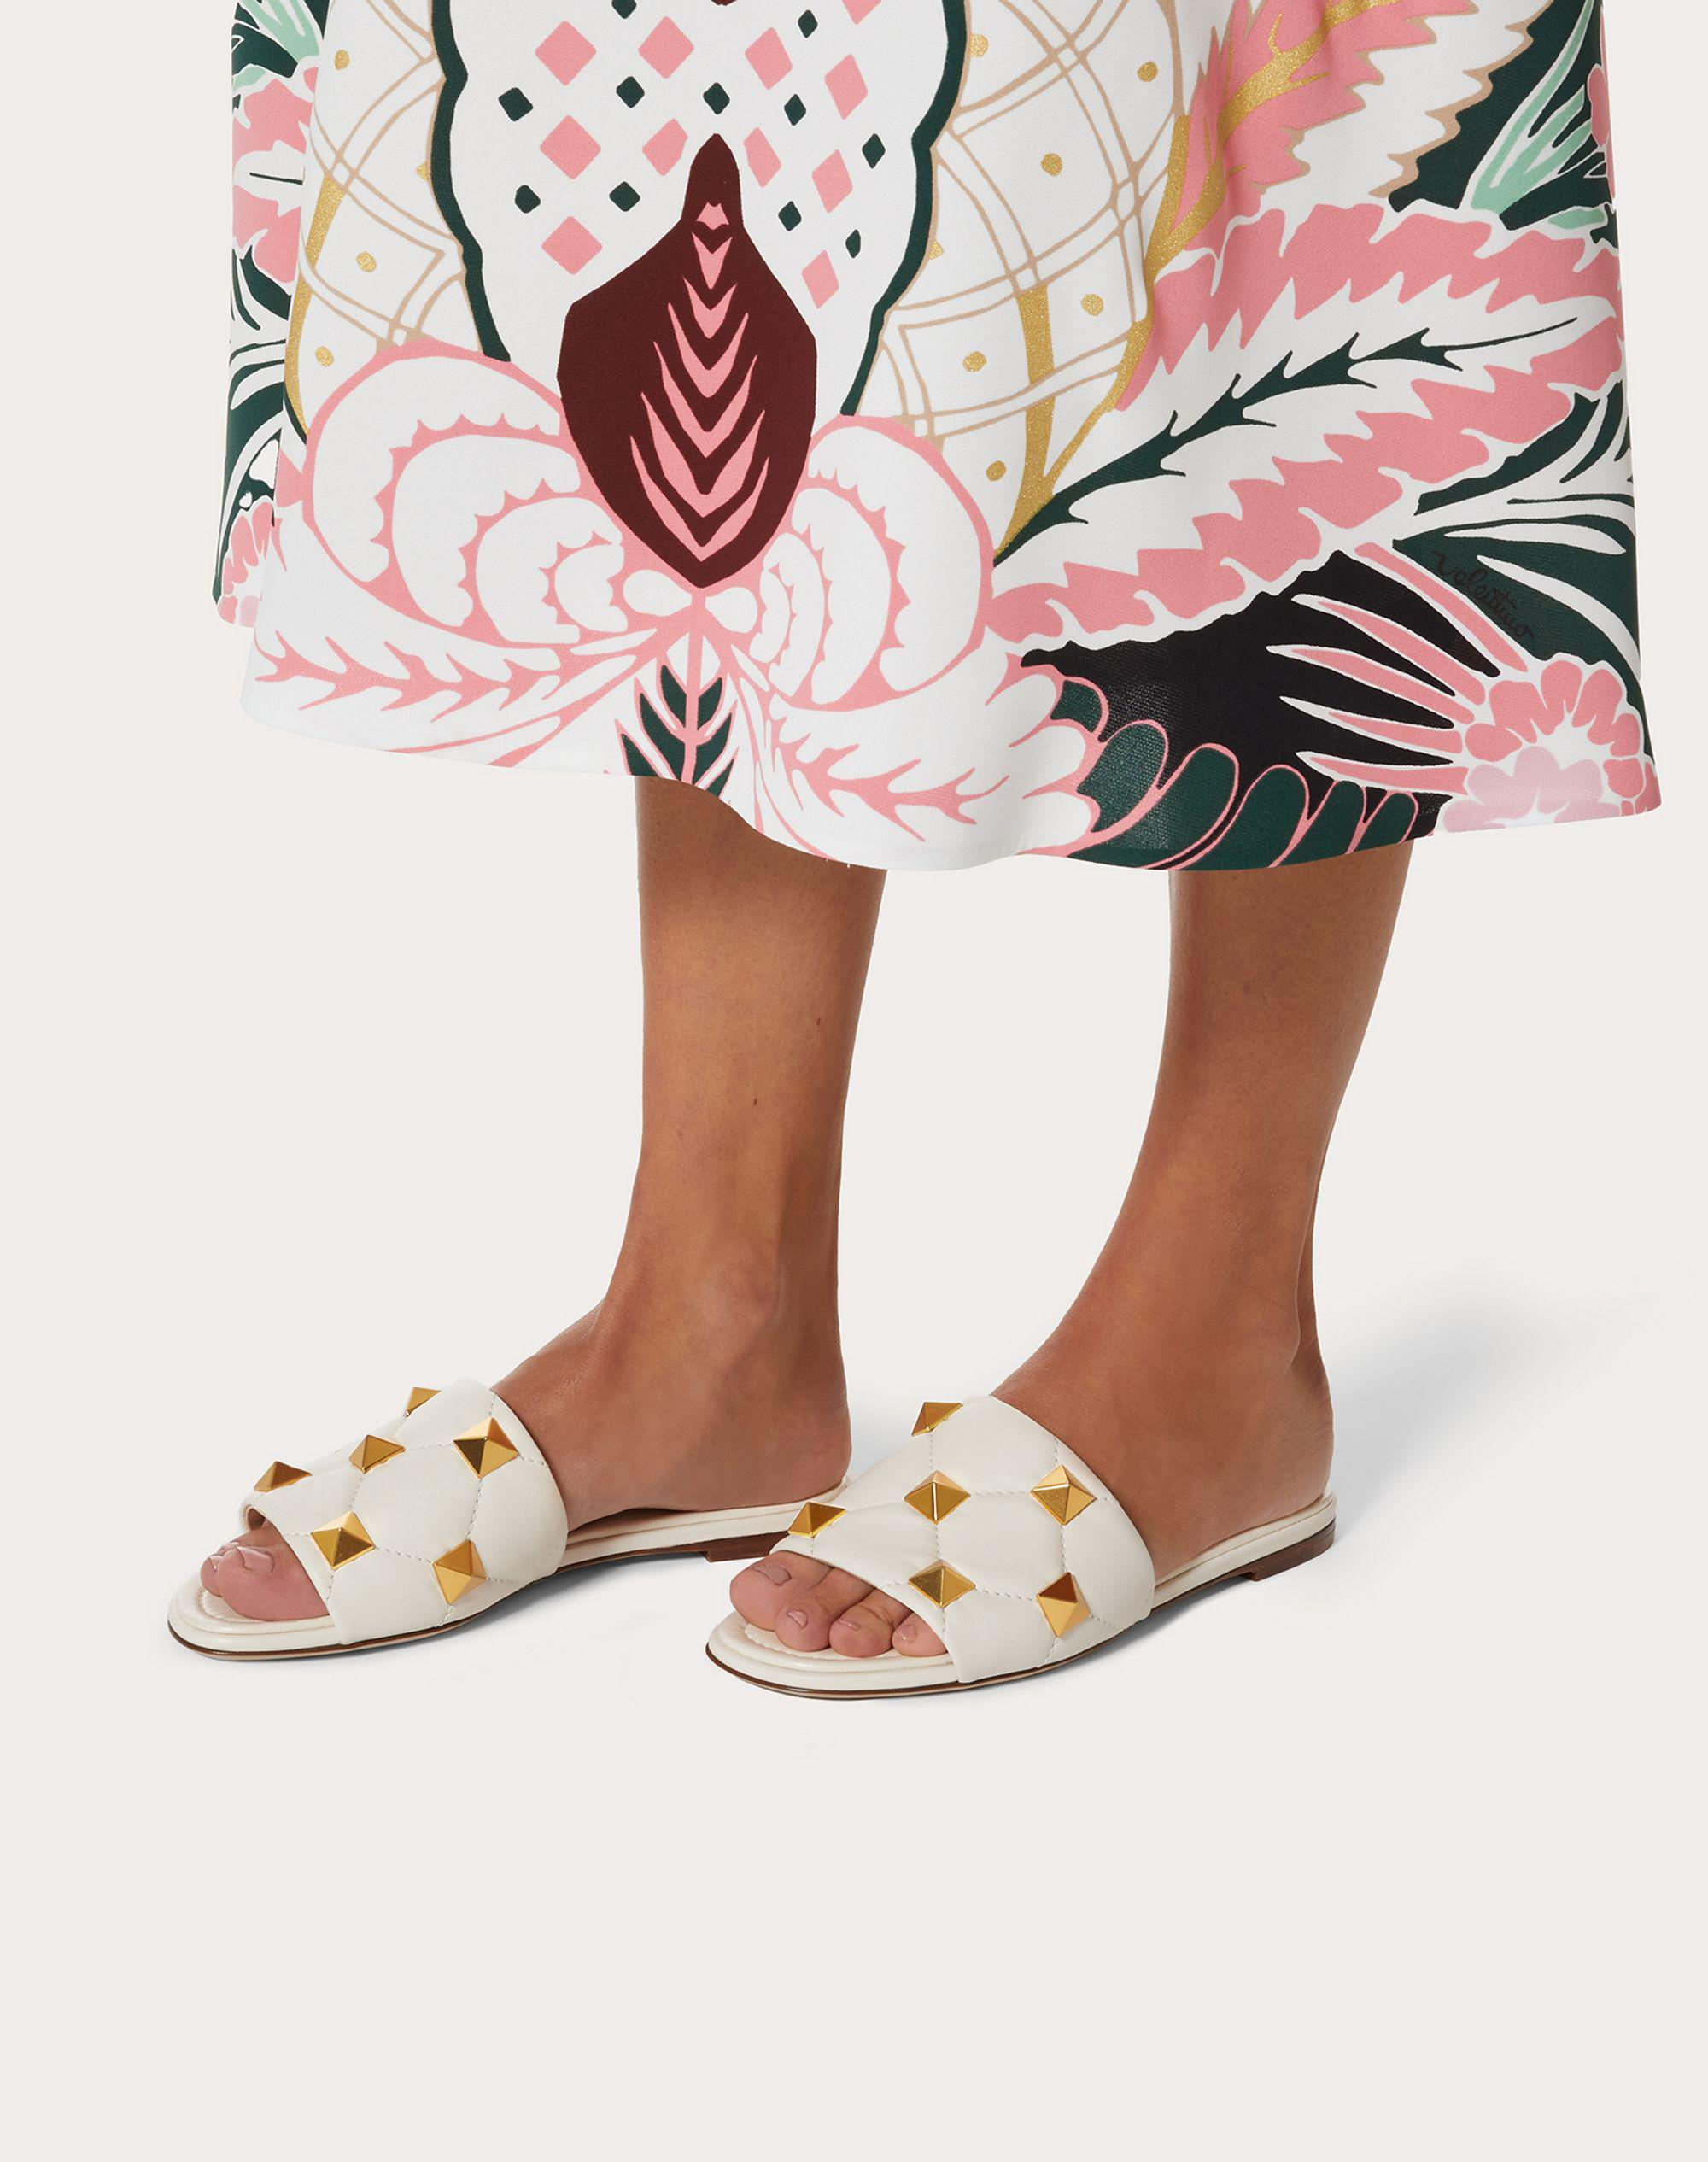 ROMAN STUD FLAT SLIDE SANDAL IN QUILTED NAPPA 5